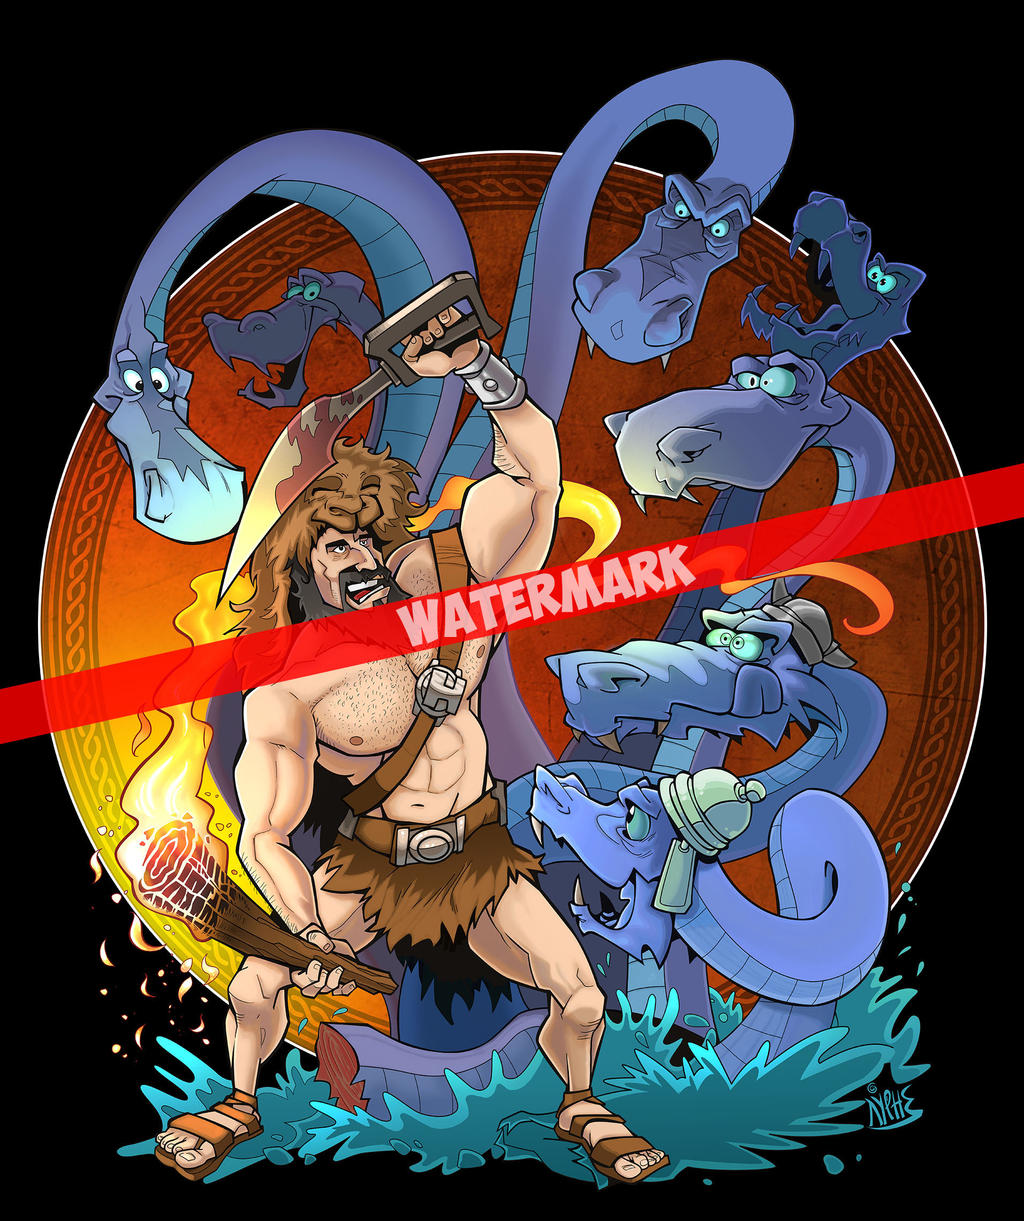 Hercules and Hydra watermarked by markador